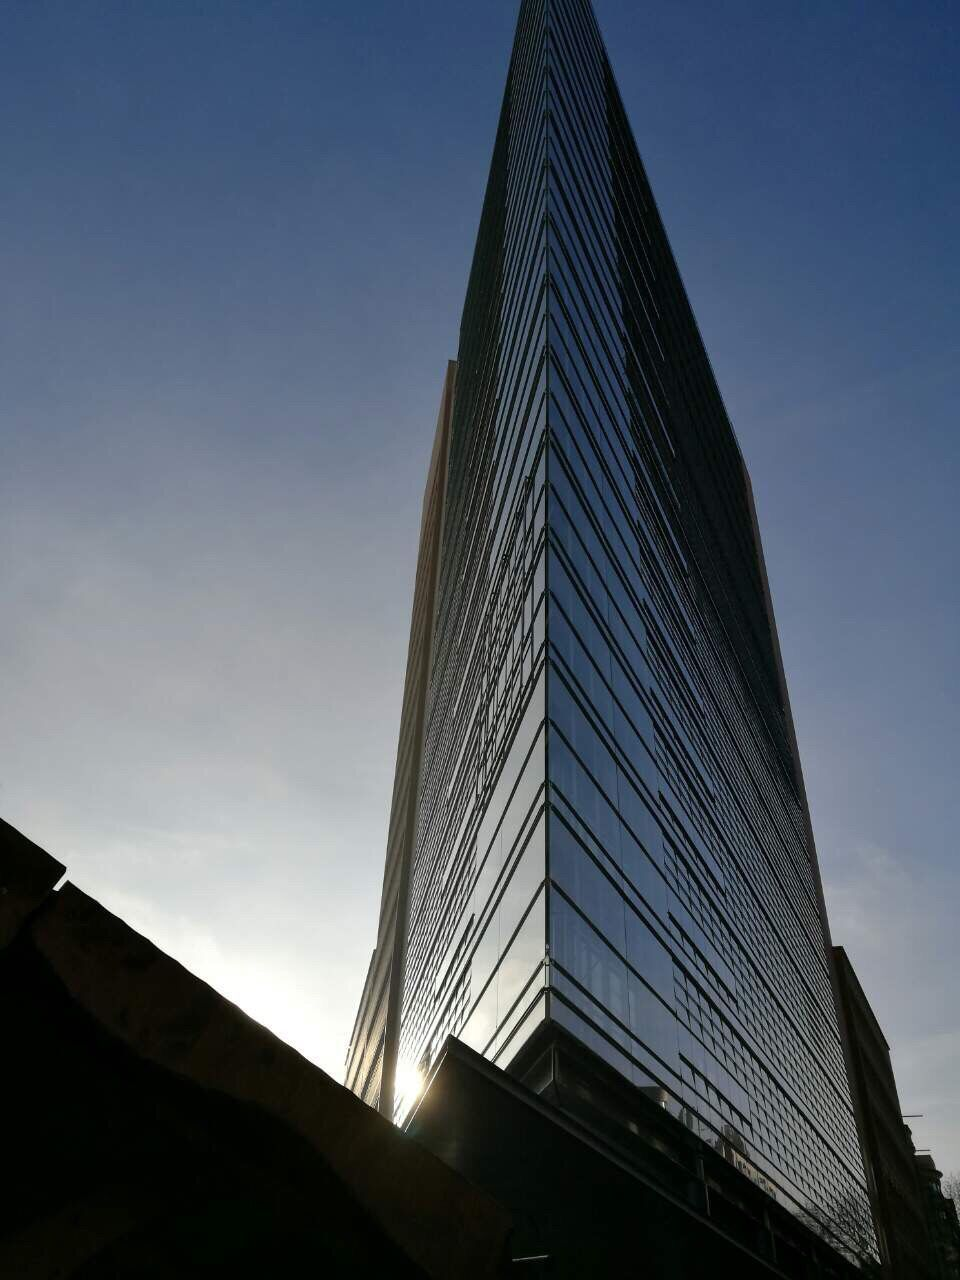 architecture, built structure, modern, low angle view, building exterior, sky, no people, skyscraper, day, clear sky, outdoors, futuristic